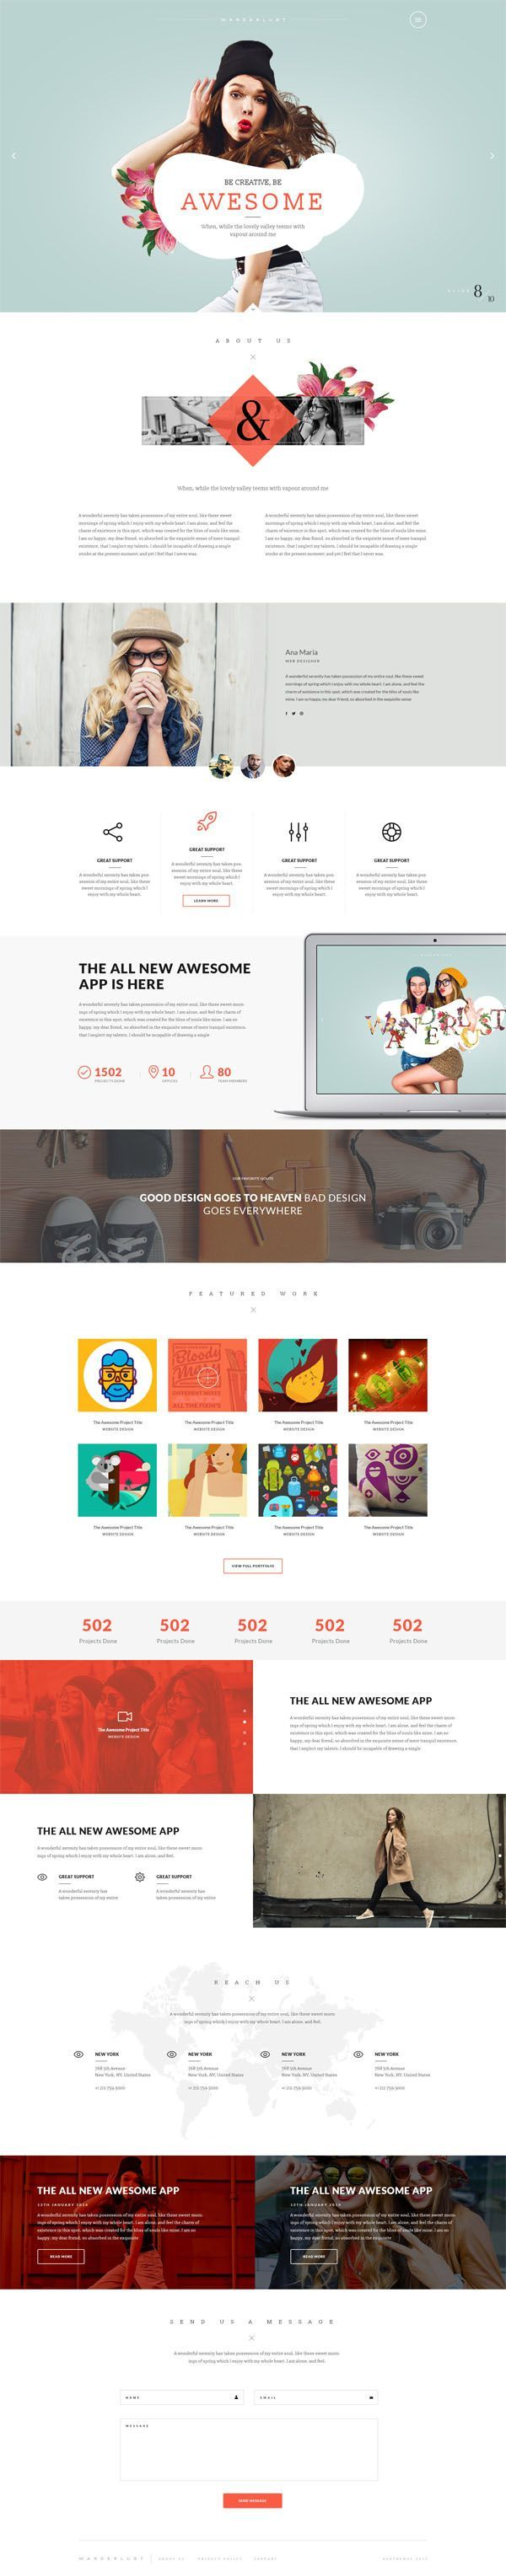 Wanderlust - Multi-Purpose WordPress Shop Theme by AVAThemes #themeforest #website #webdesign